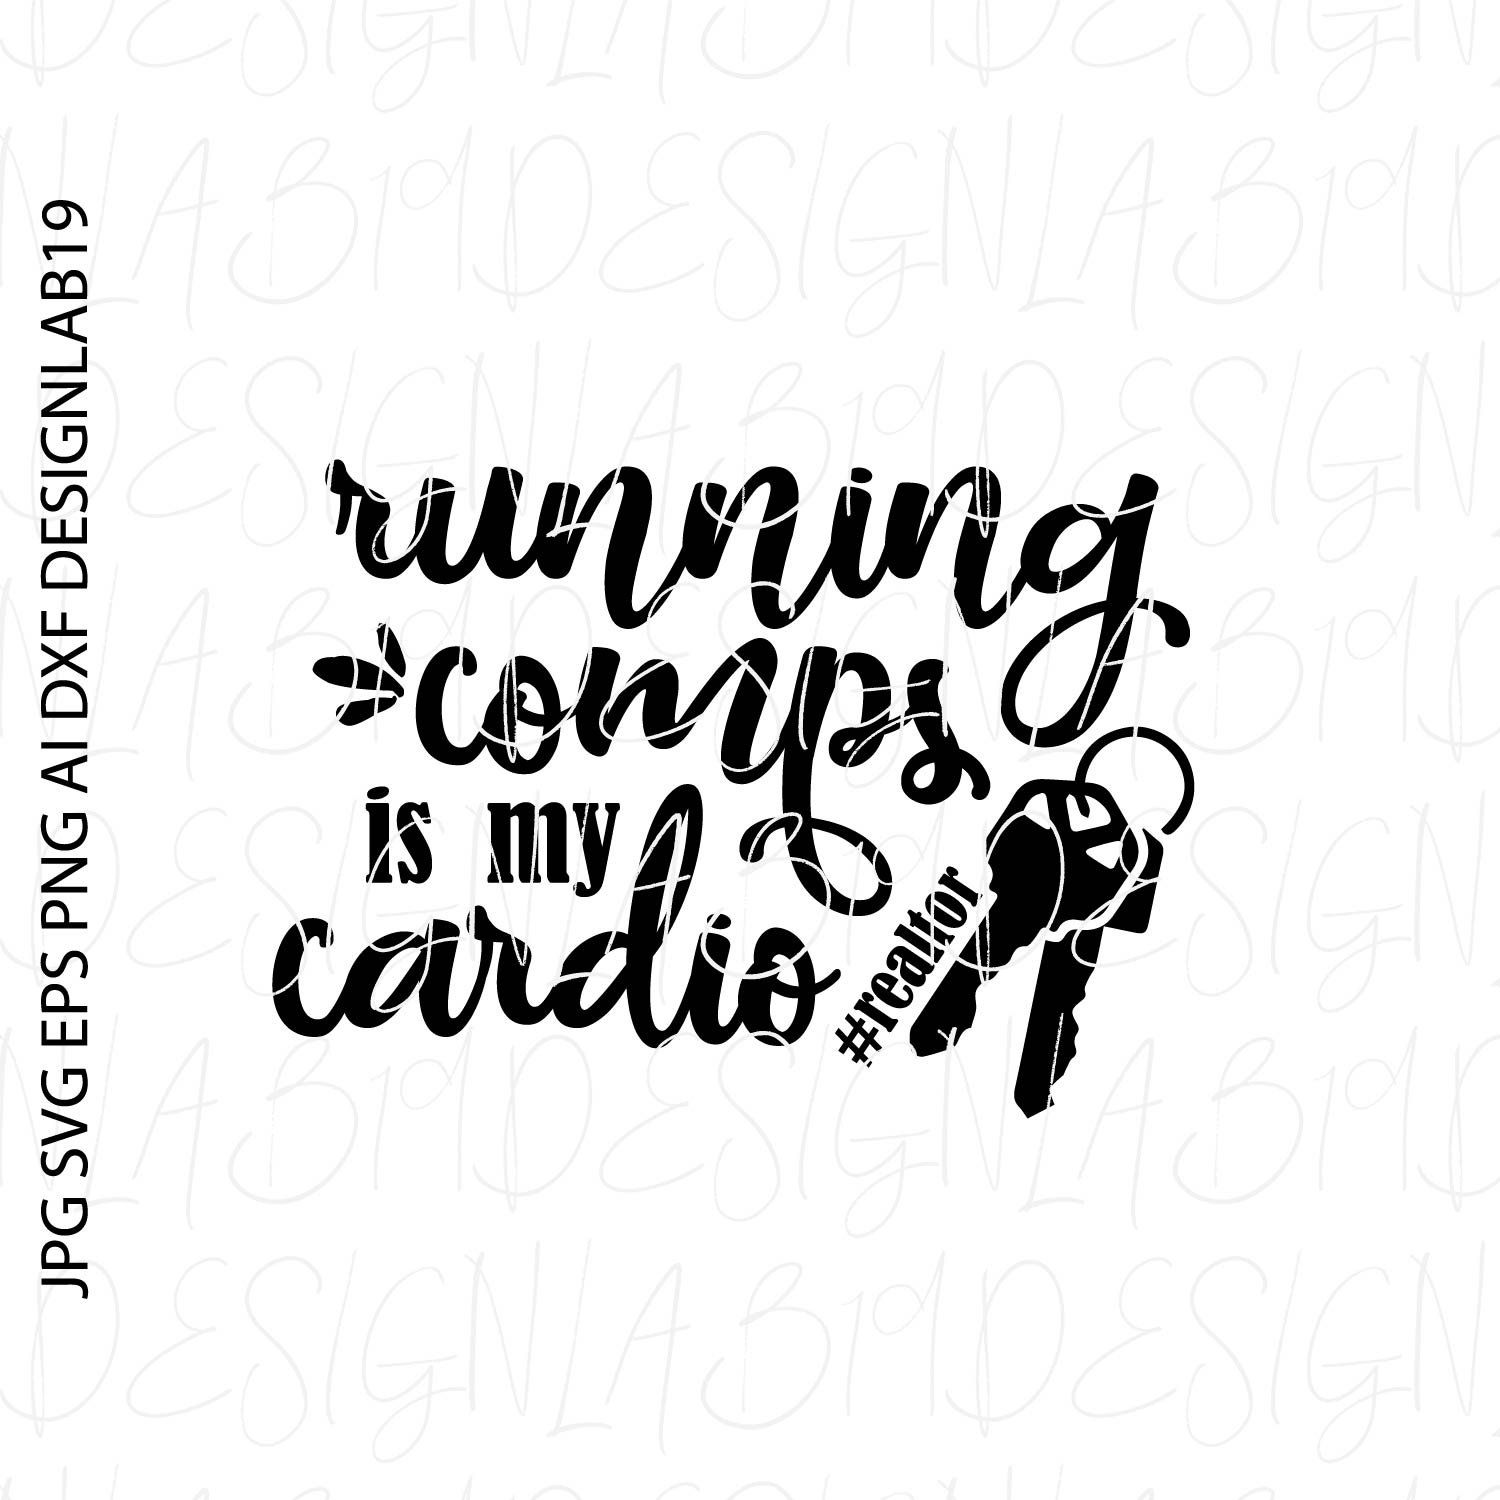 Running comps is my cardio svg realtor real estate htv